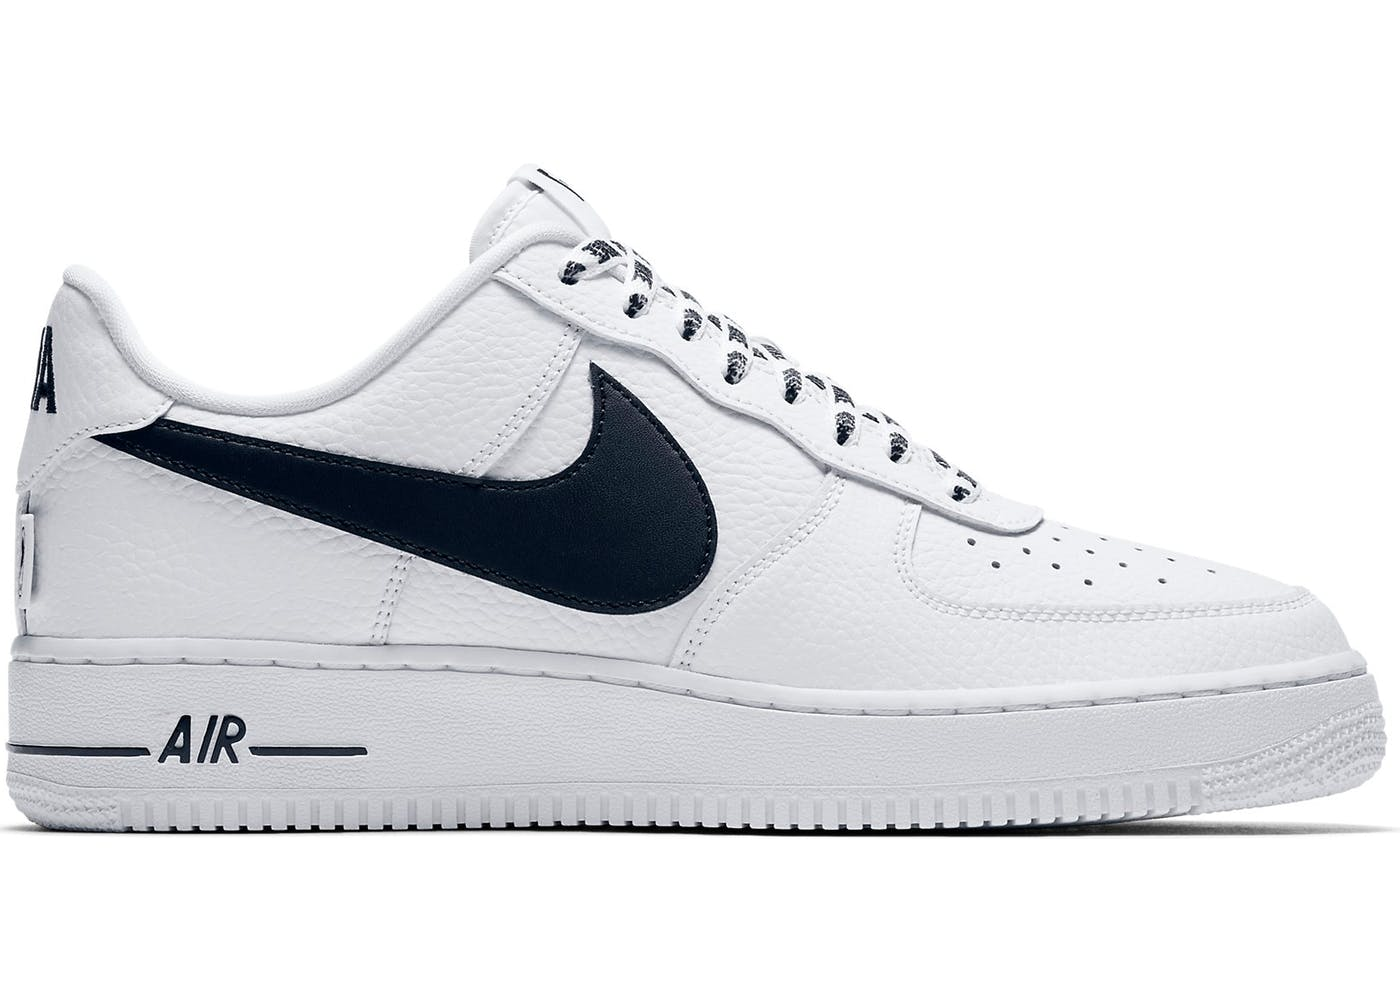 air force 1 low nba white black. Black Bedroom Furniture Sets. Home Design Ideas